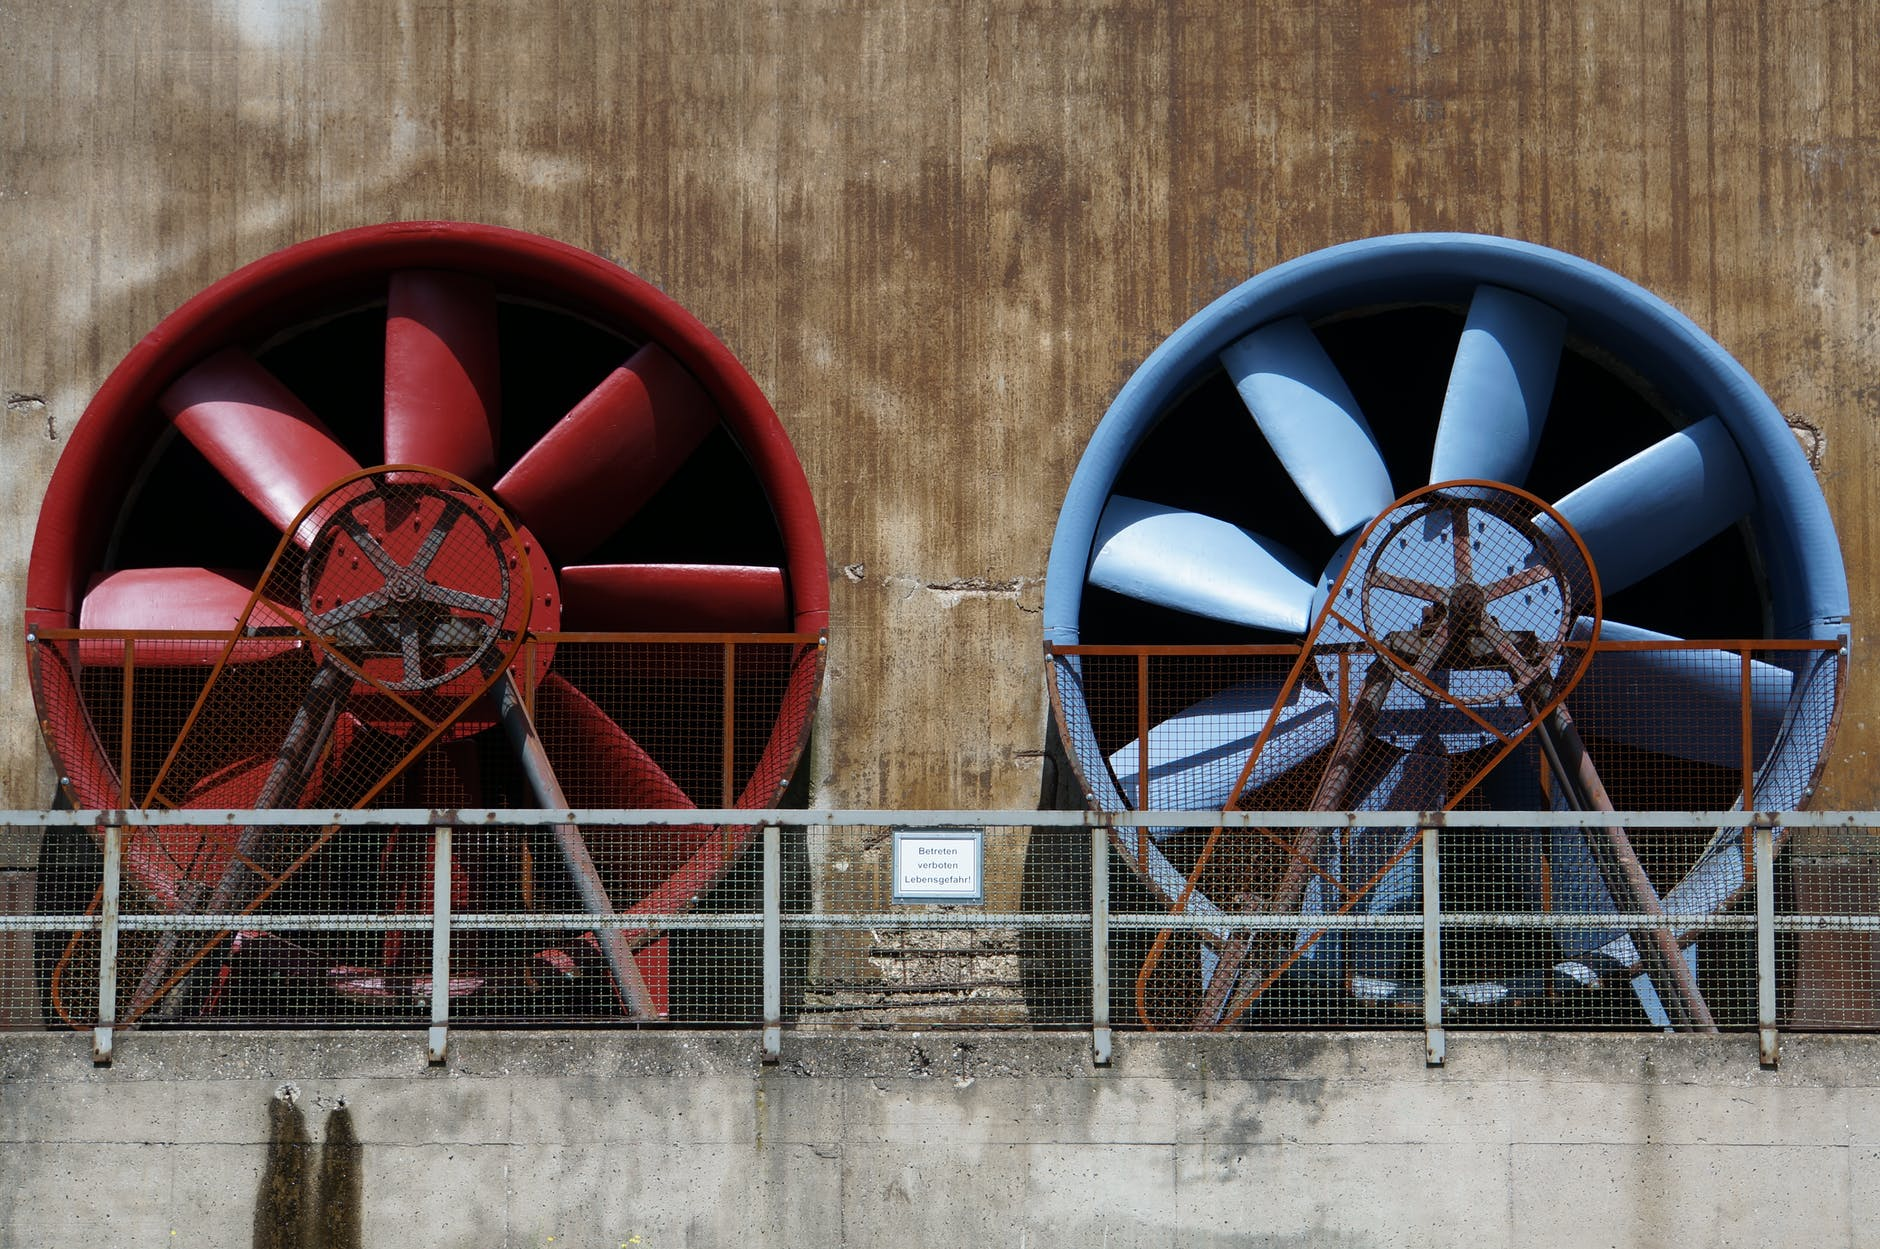 Industrial cooling fans in red and blue